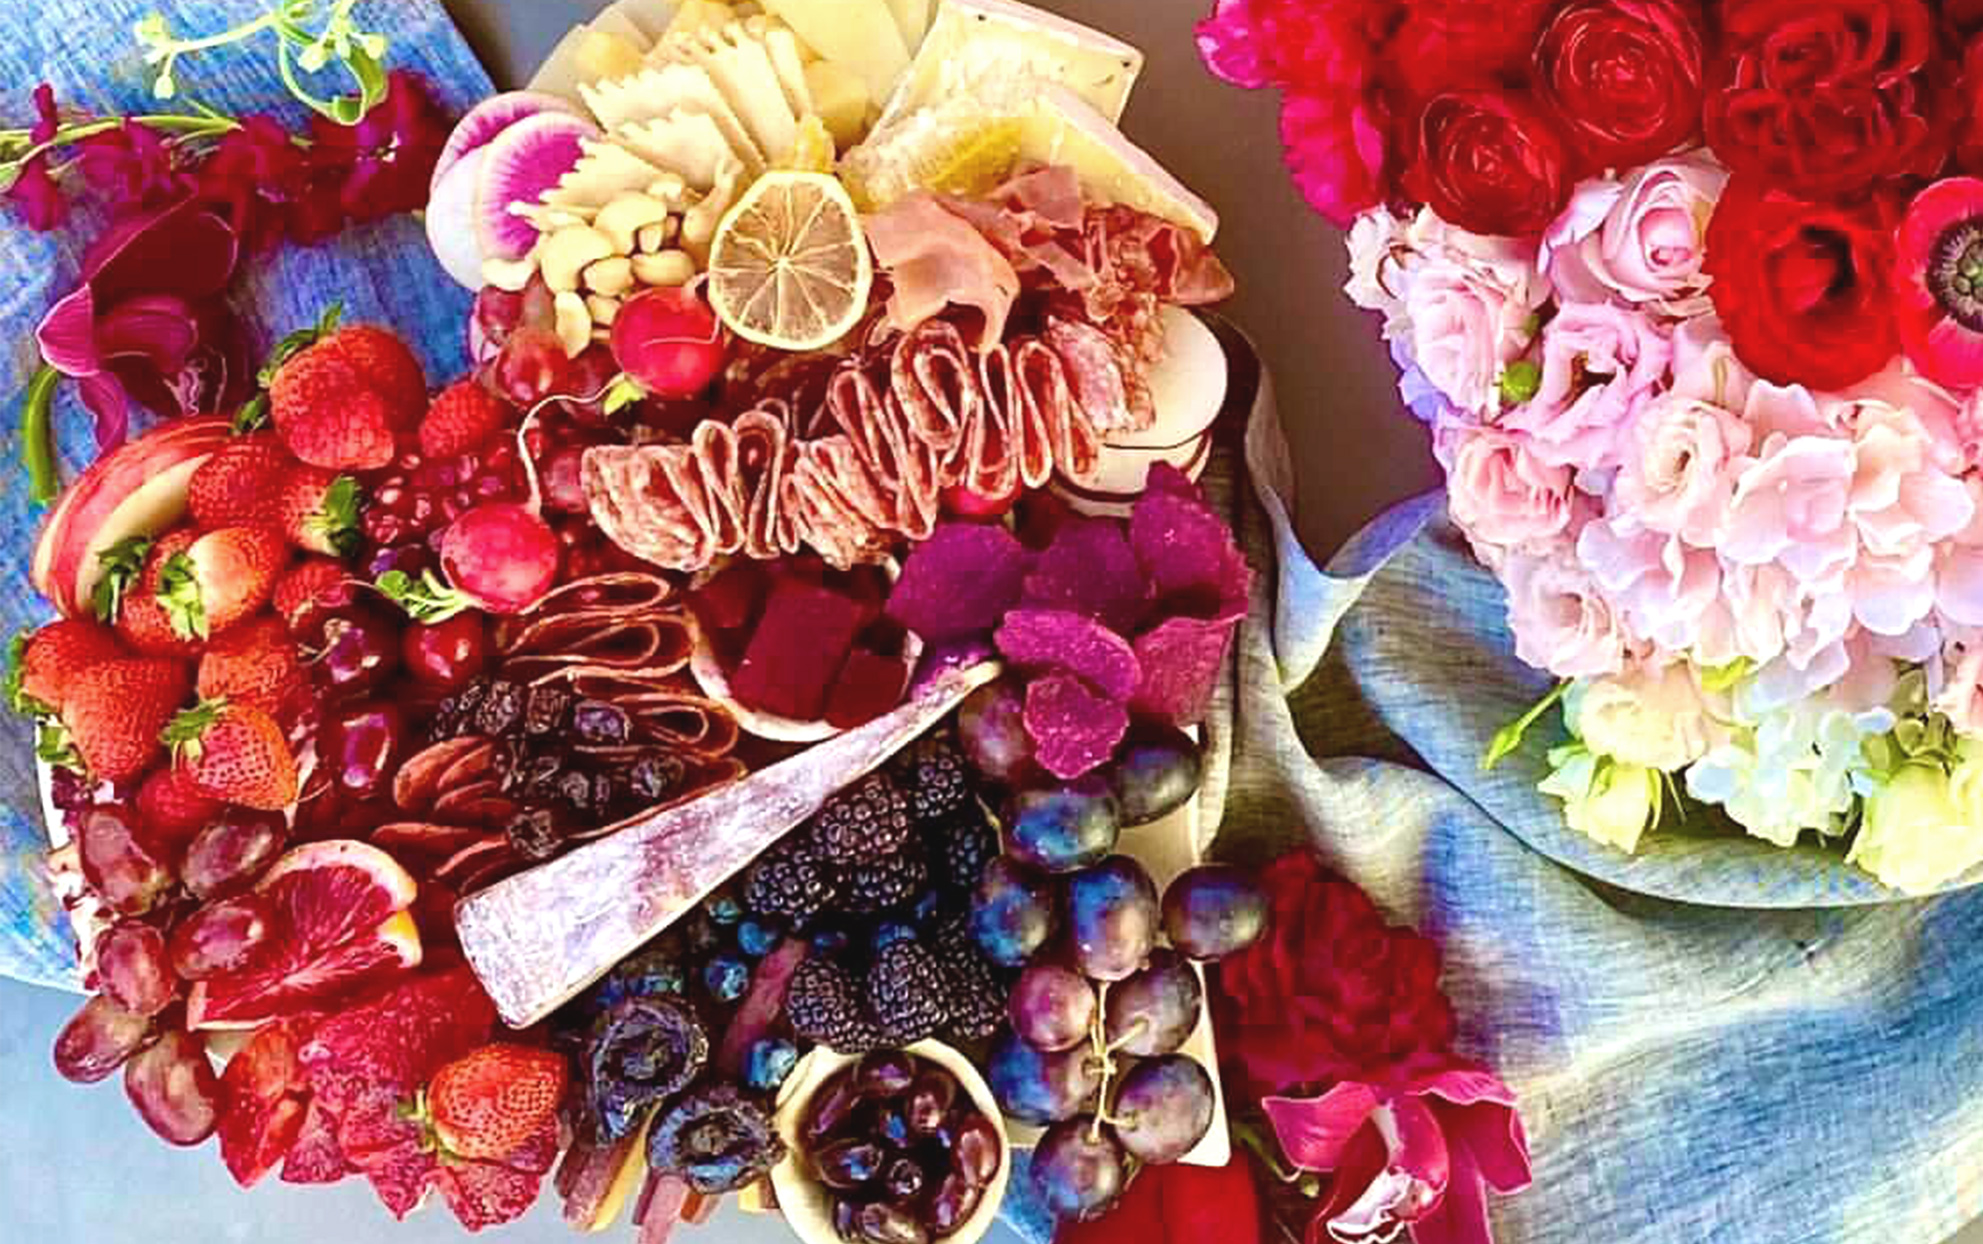 ombre charcuterie and flowers